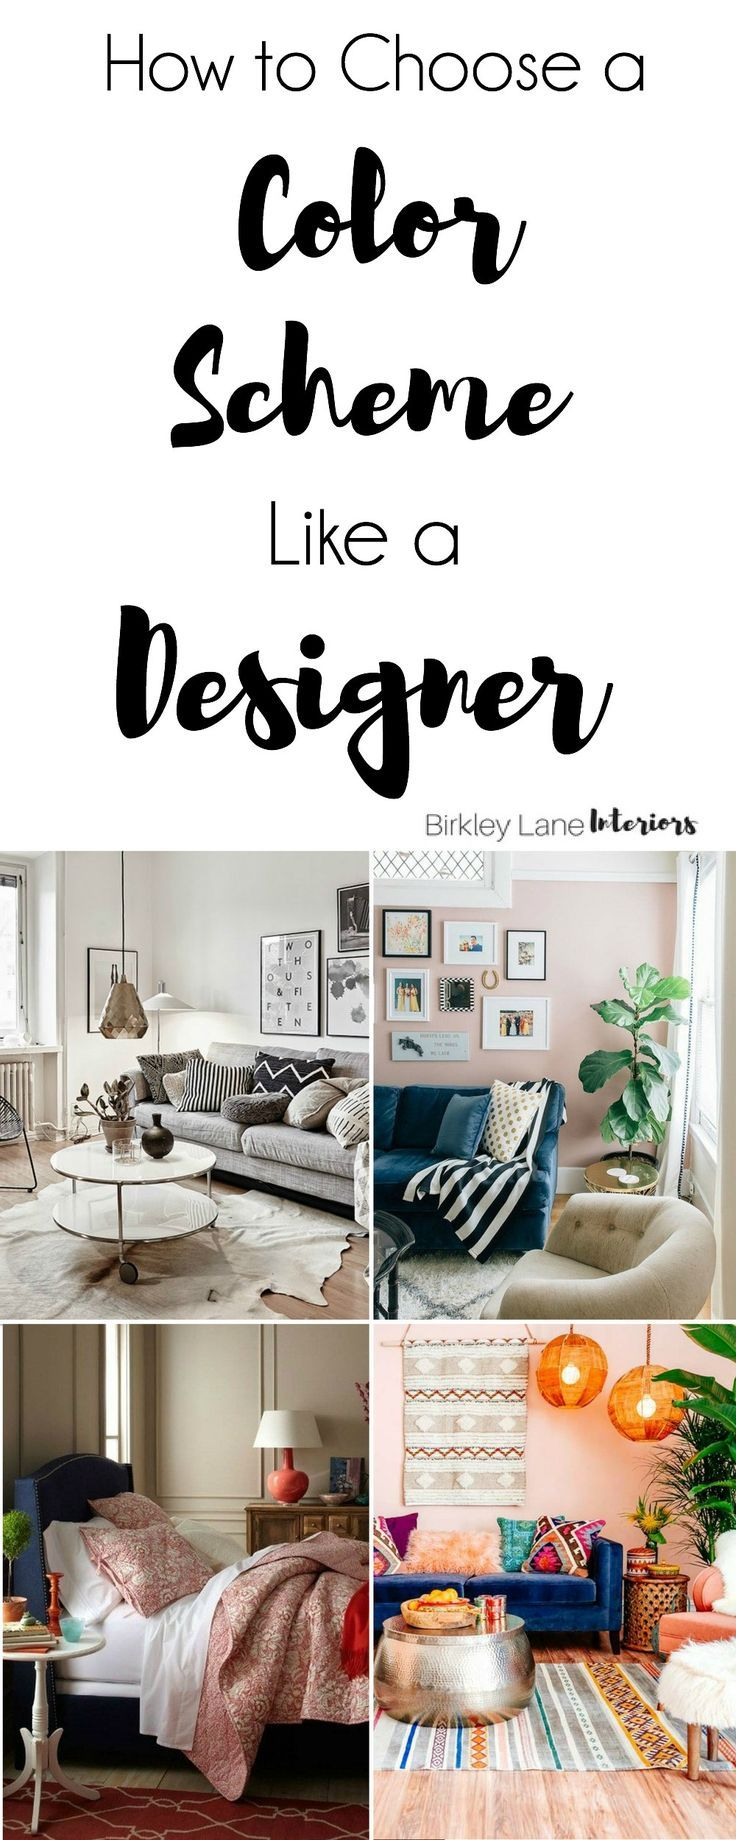 Need some help picking out what colors to use in your home? Click here to learn how to choose a color scheme like a designer!  How to choose colors for your home.